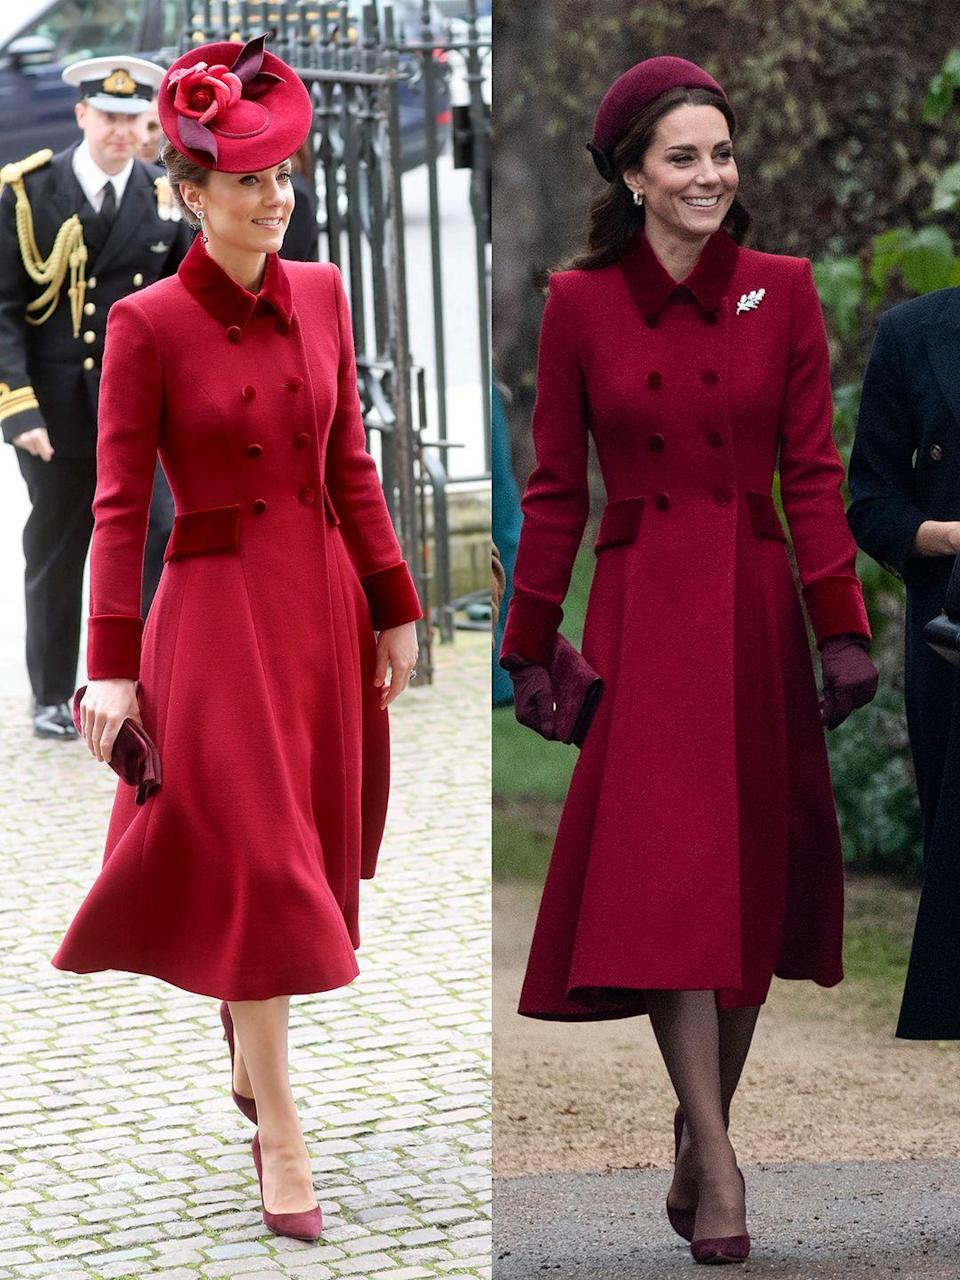 "<p>The Duchess referenced the good old days of the ""fab four"" at the 2020 Commonwealth Day Services, on Monday, March 8, by wearing a red Catherine Walker Coat with velvet detailing that she also donned at <a href=""https://www.townandcountrymag.com/style/fashion-trends/a25634345/kate-middleton-red-coat-christmas-day-photos/"" rel=""nofollow noopener"" target=""_blank"" data-ylk=""slk:Christmas Day services in 2018."" class=""link rapid-noclick-resp"">Christmas Day services in 2018.</a></p>"